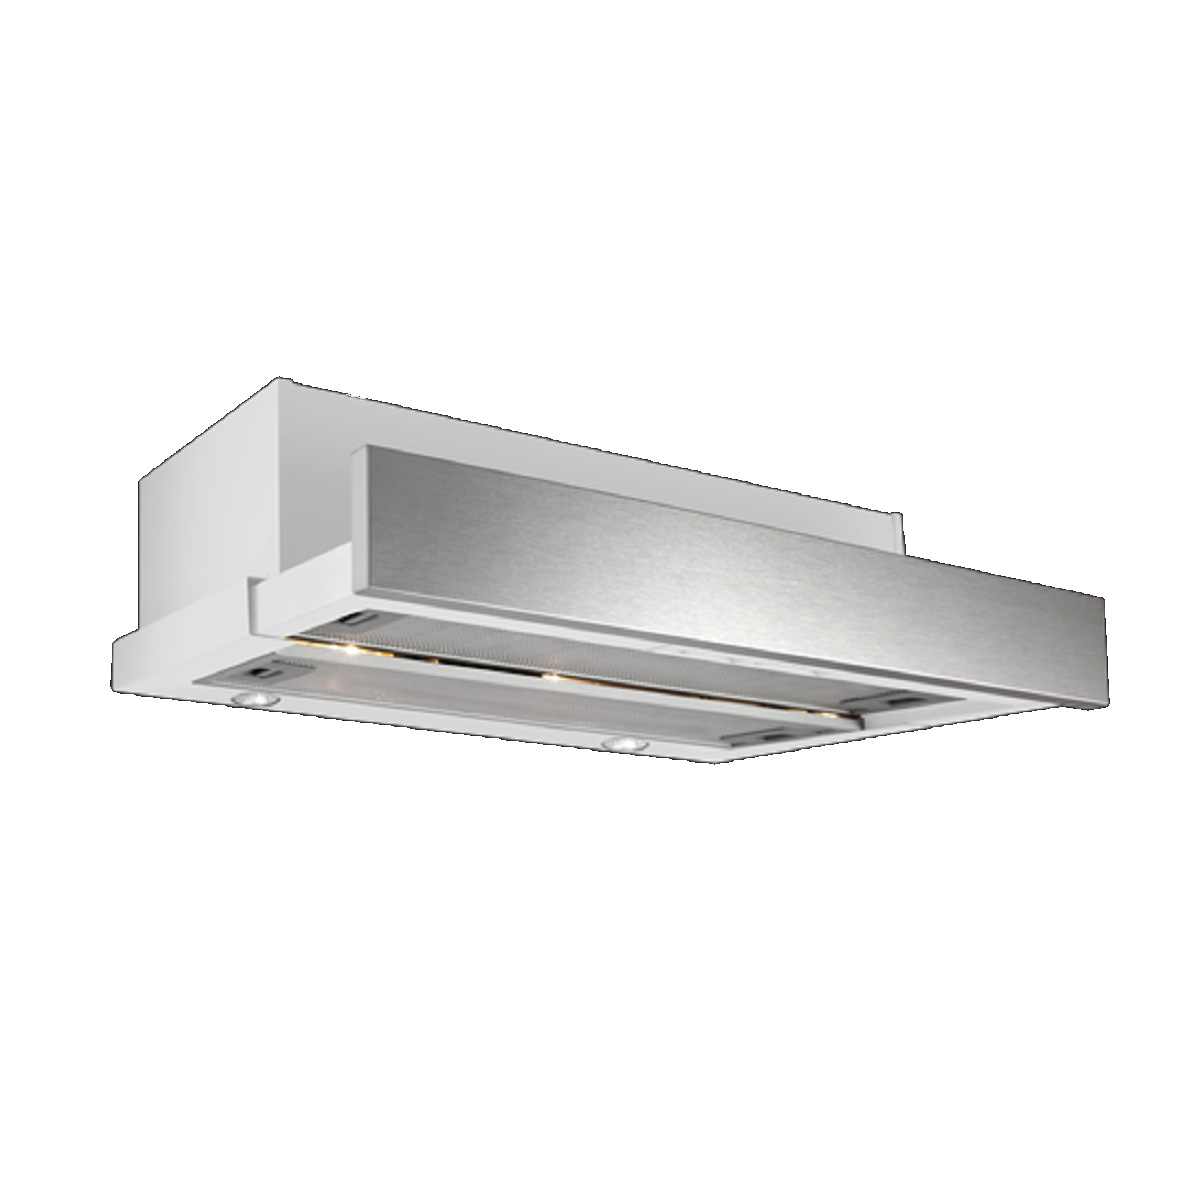 Omega ORT9WXA Retractable Rangehood